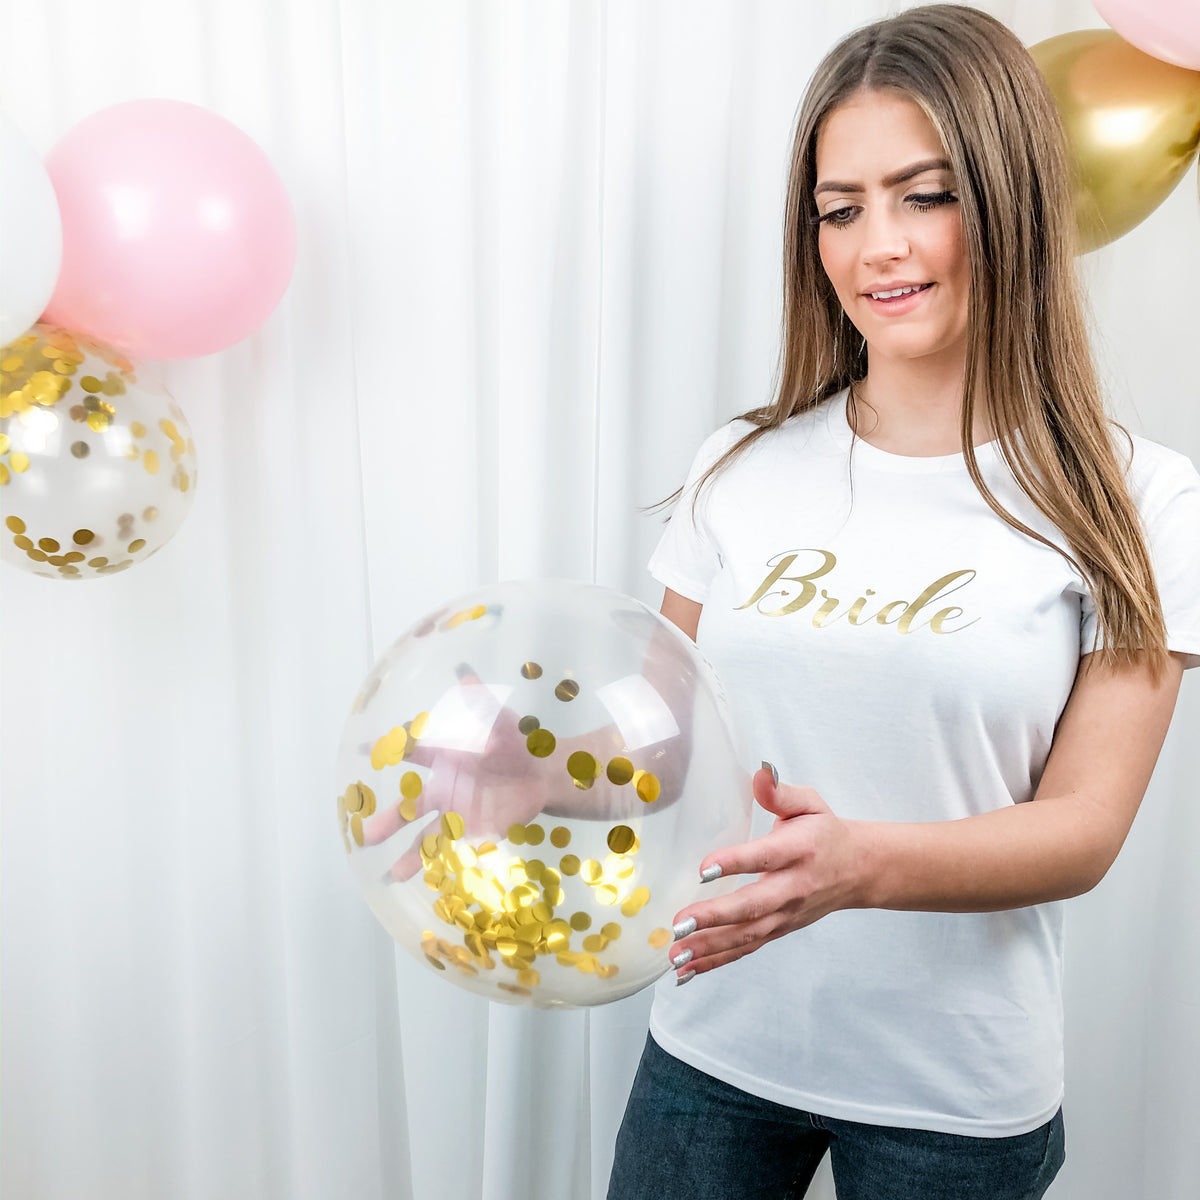 Bride Slogan T-shirt